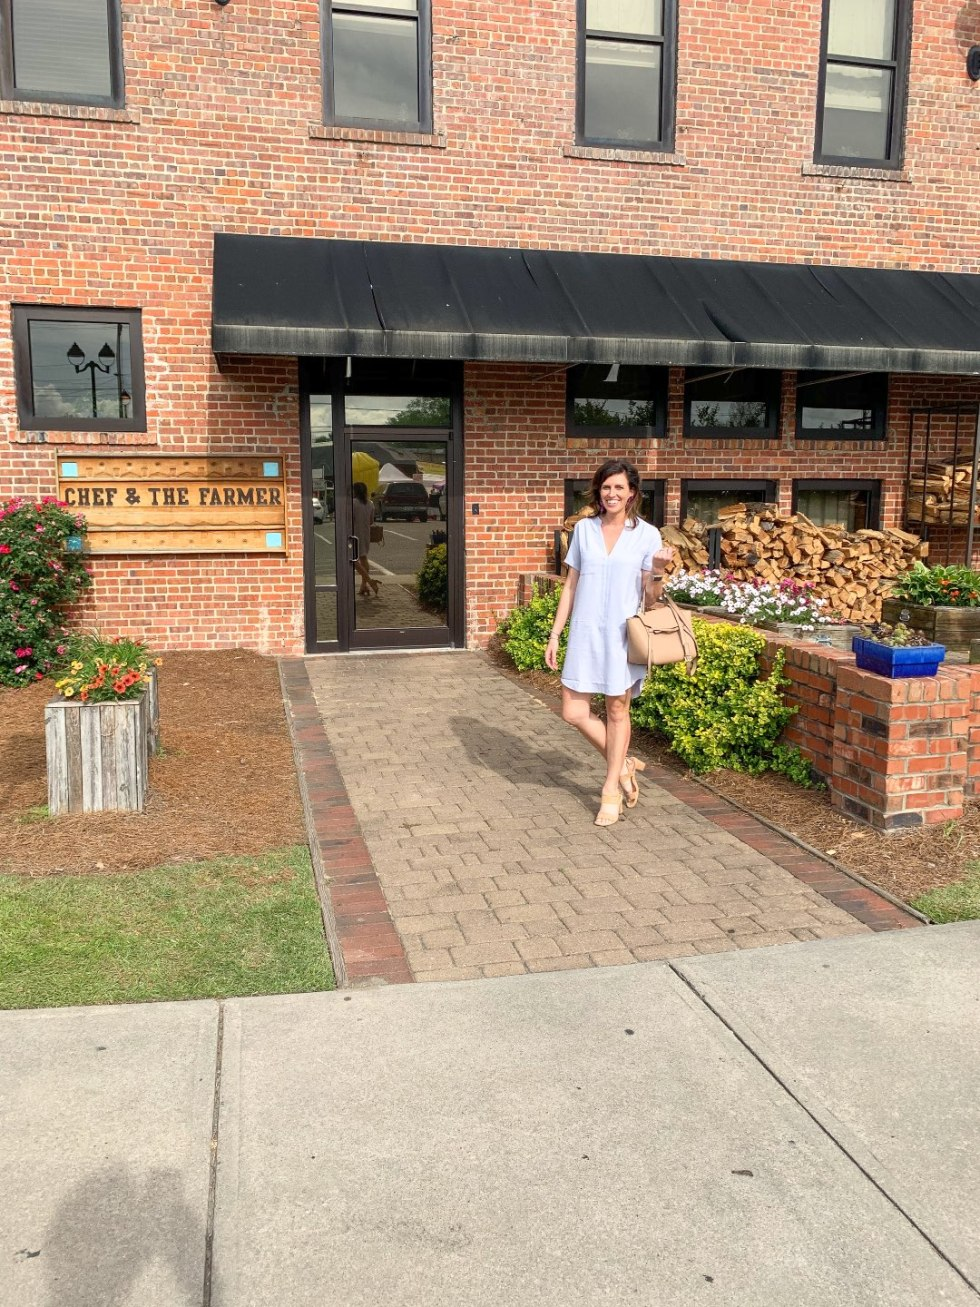 Top 5 Best Destination Restaurants in Eastern NC you Need to Try - I'm Fixin' To - @mbg0112 | Top 5 Best Destination Restaurants in Eastern NC you Need to Try by popular North Carolina blog, I'm Fixin' To: image of a woman standing outside at the Chef and The Farmer.